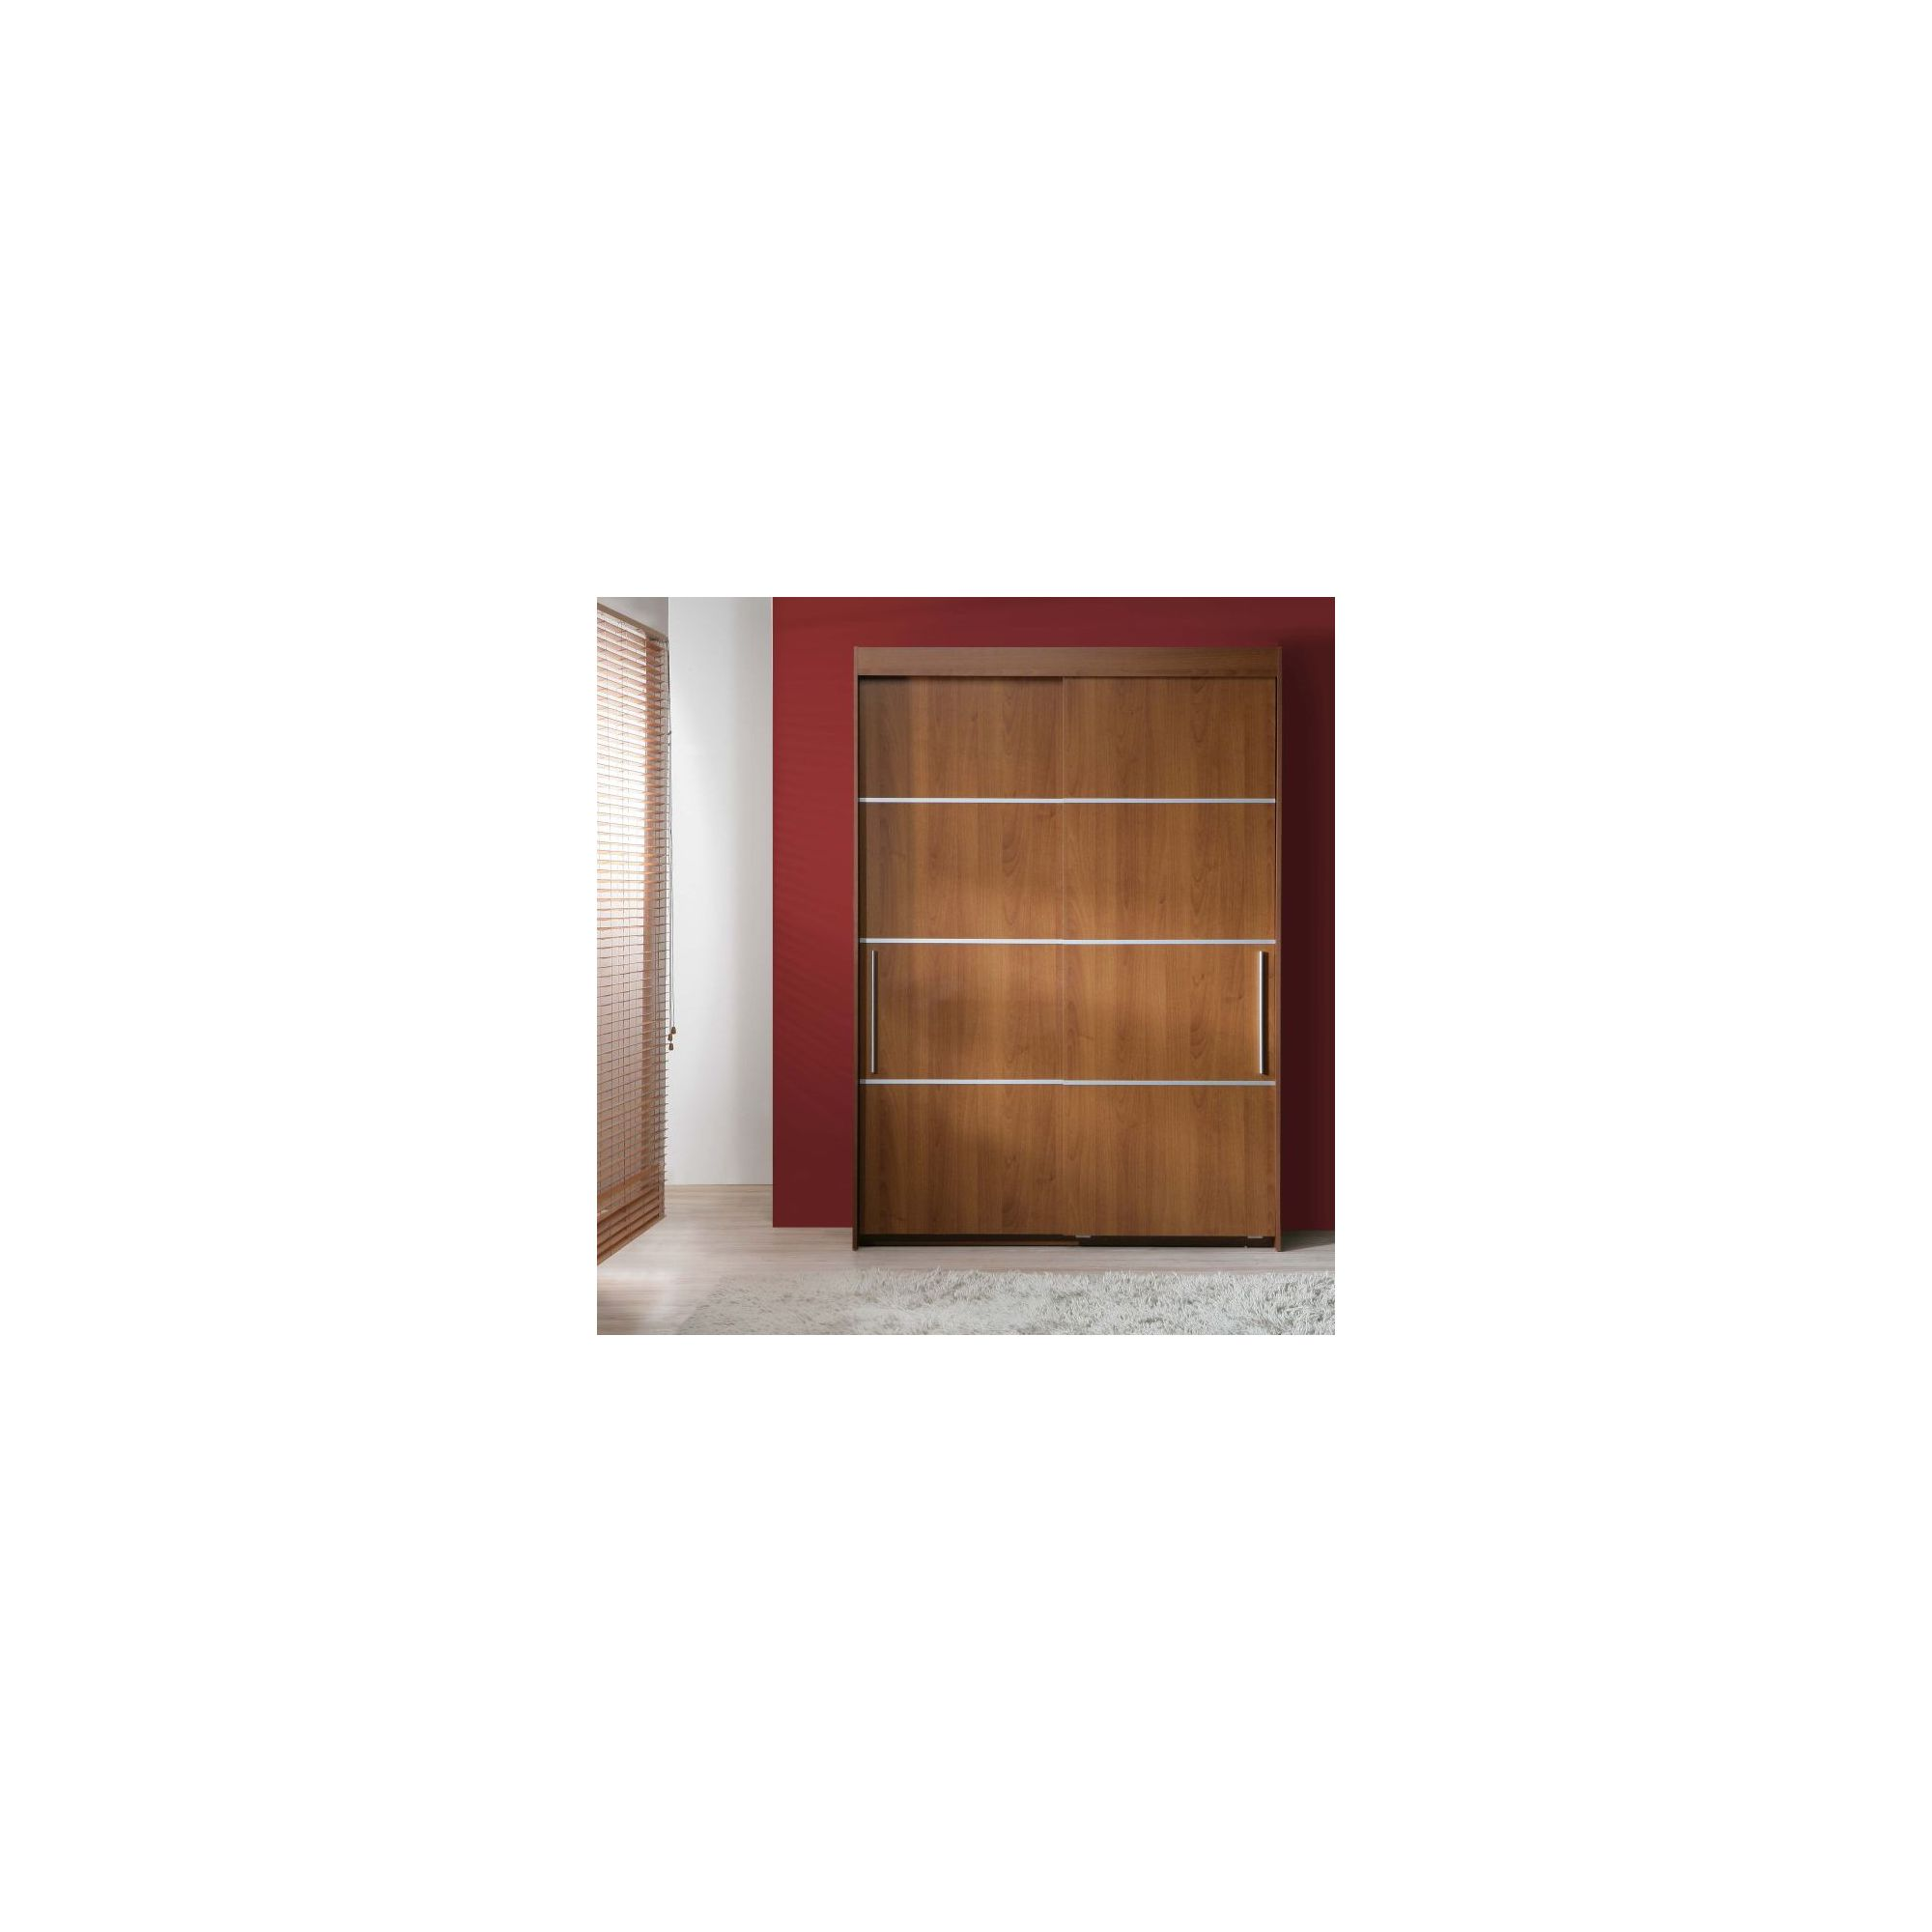 Amos Mann furniture Napoli 2 Door Sliding Wardrobe at Tescos Direct